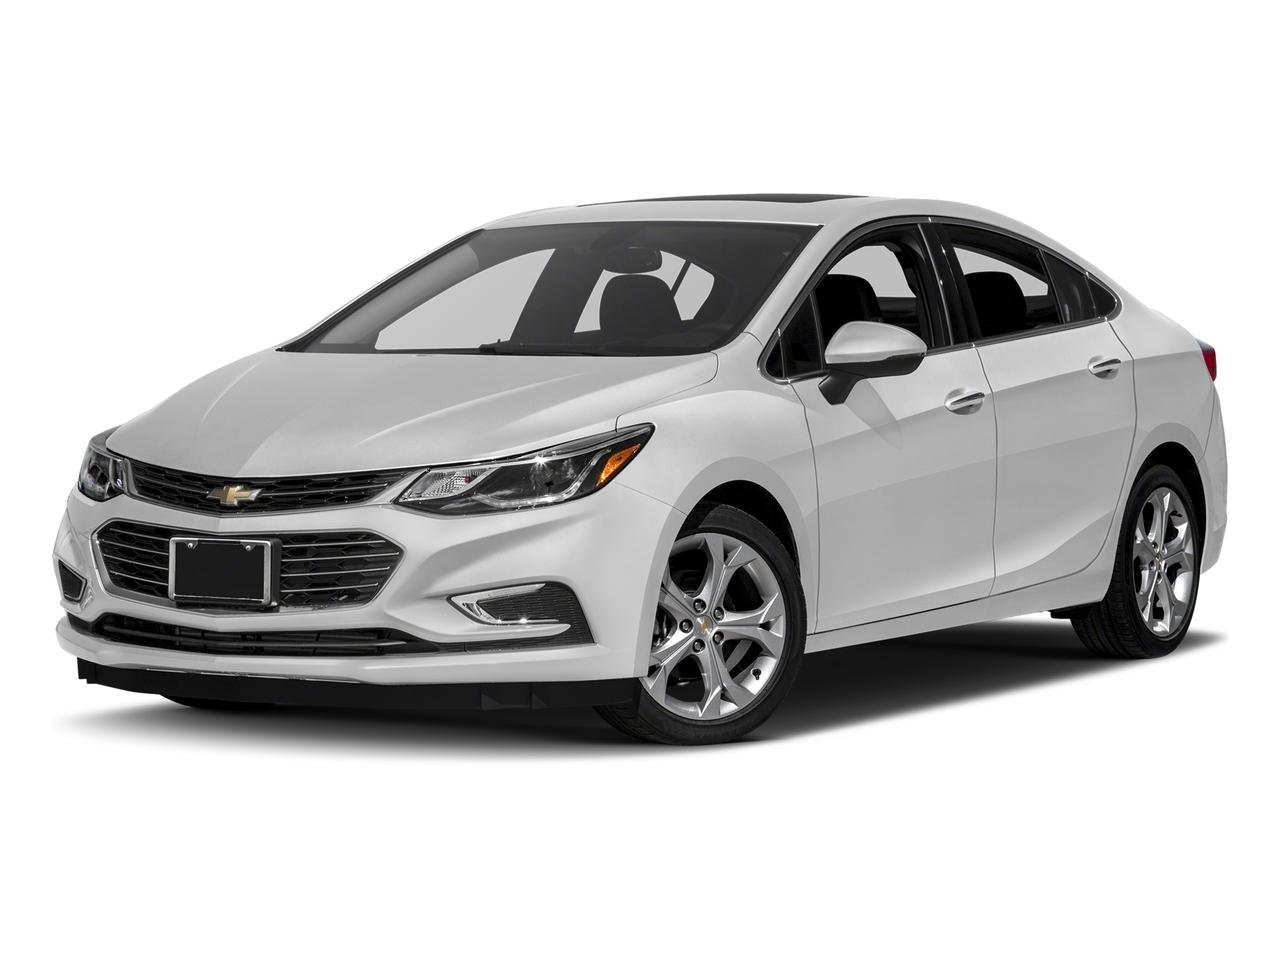 2017 Chevrolet Cruze Vehicle Photo in Easton, MD 21601